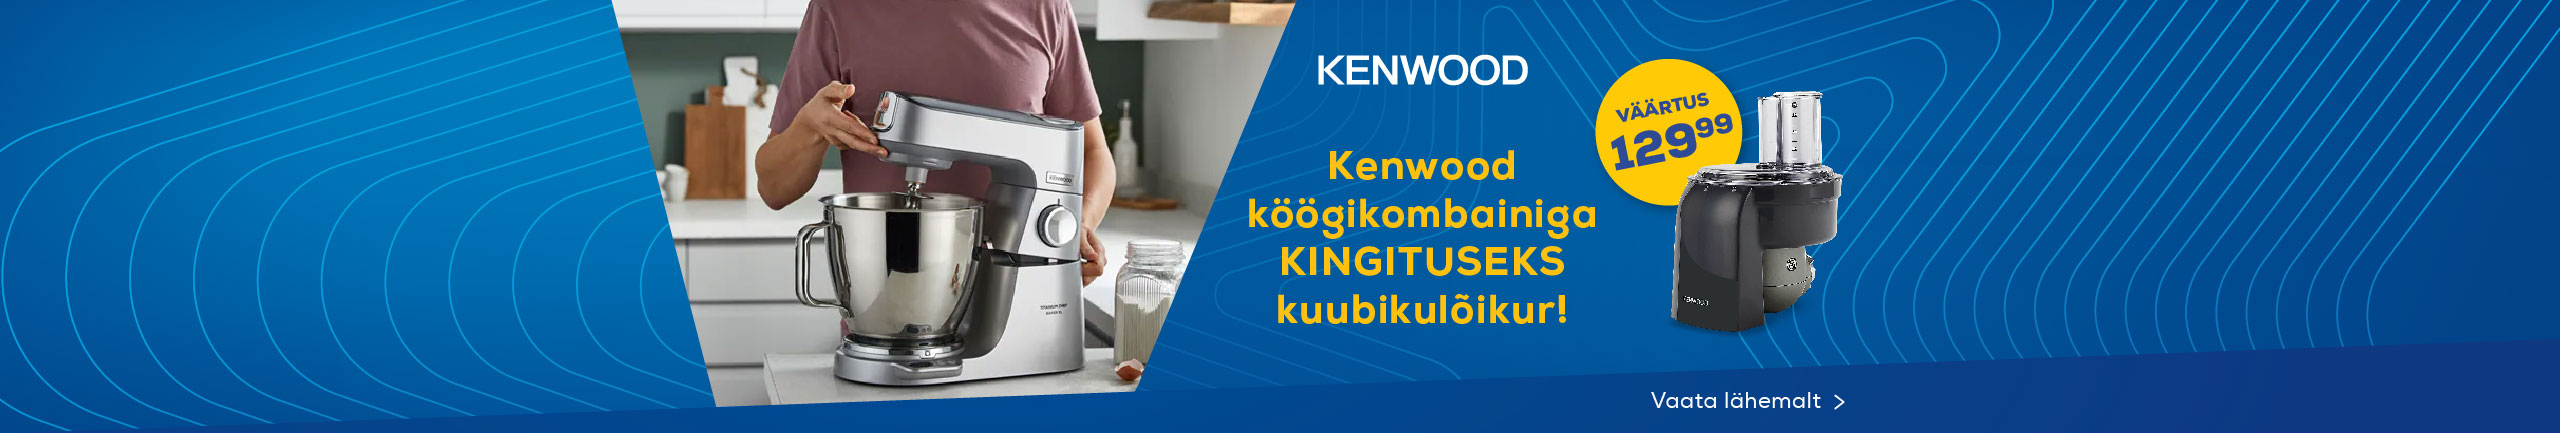 Buy Kenwood mixer and receive a cubix attachment as a gift